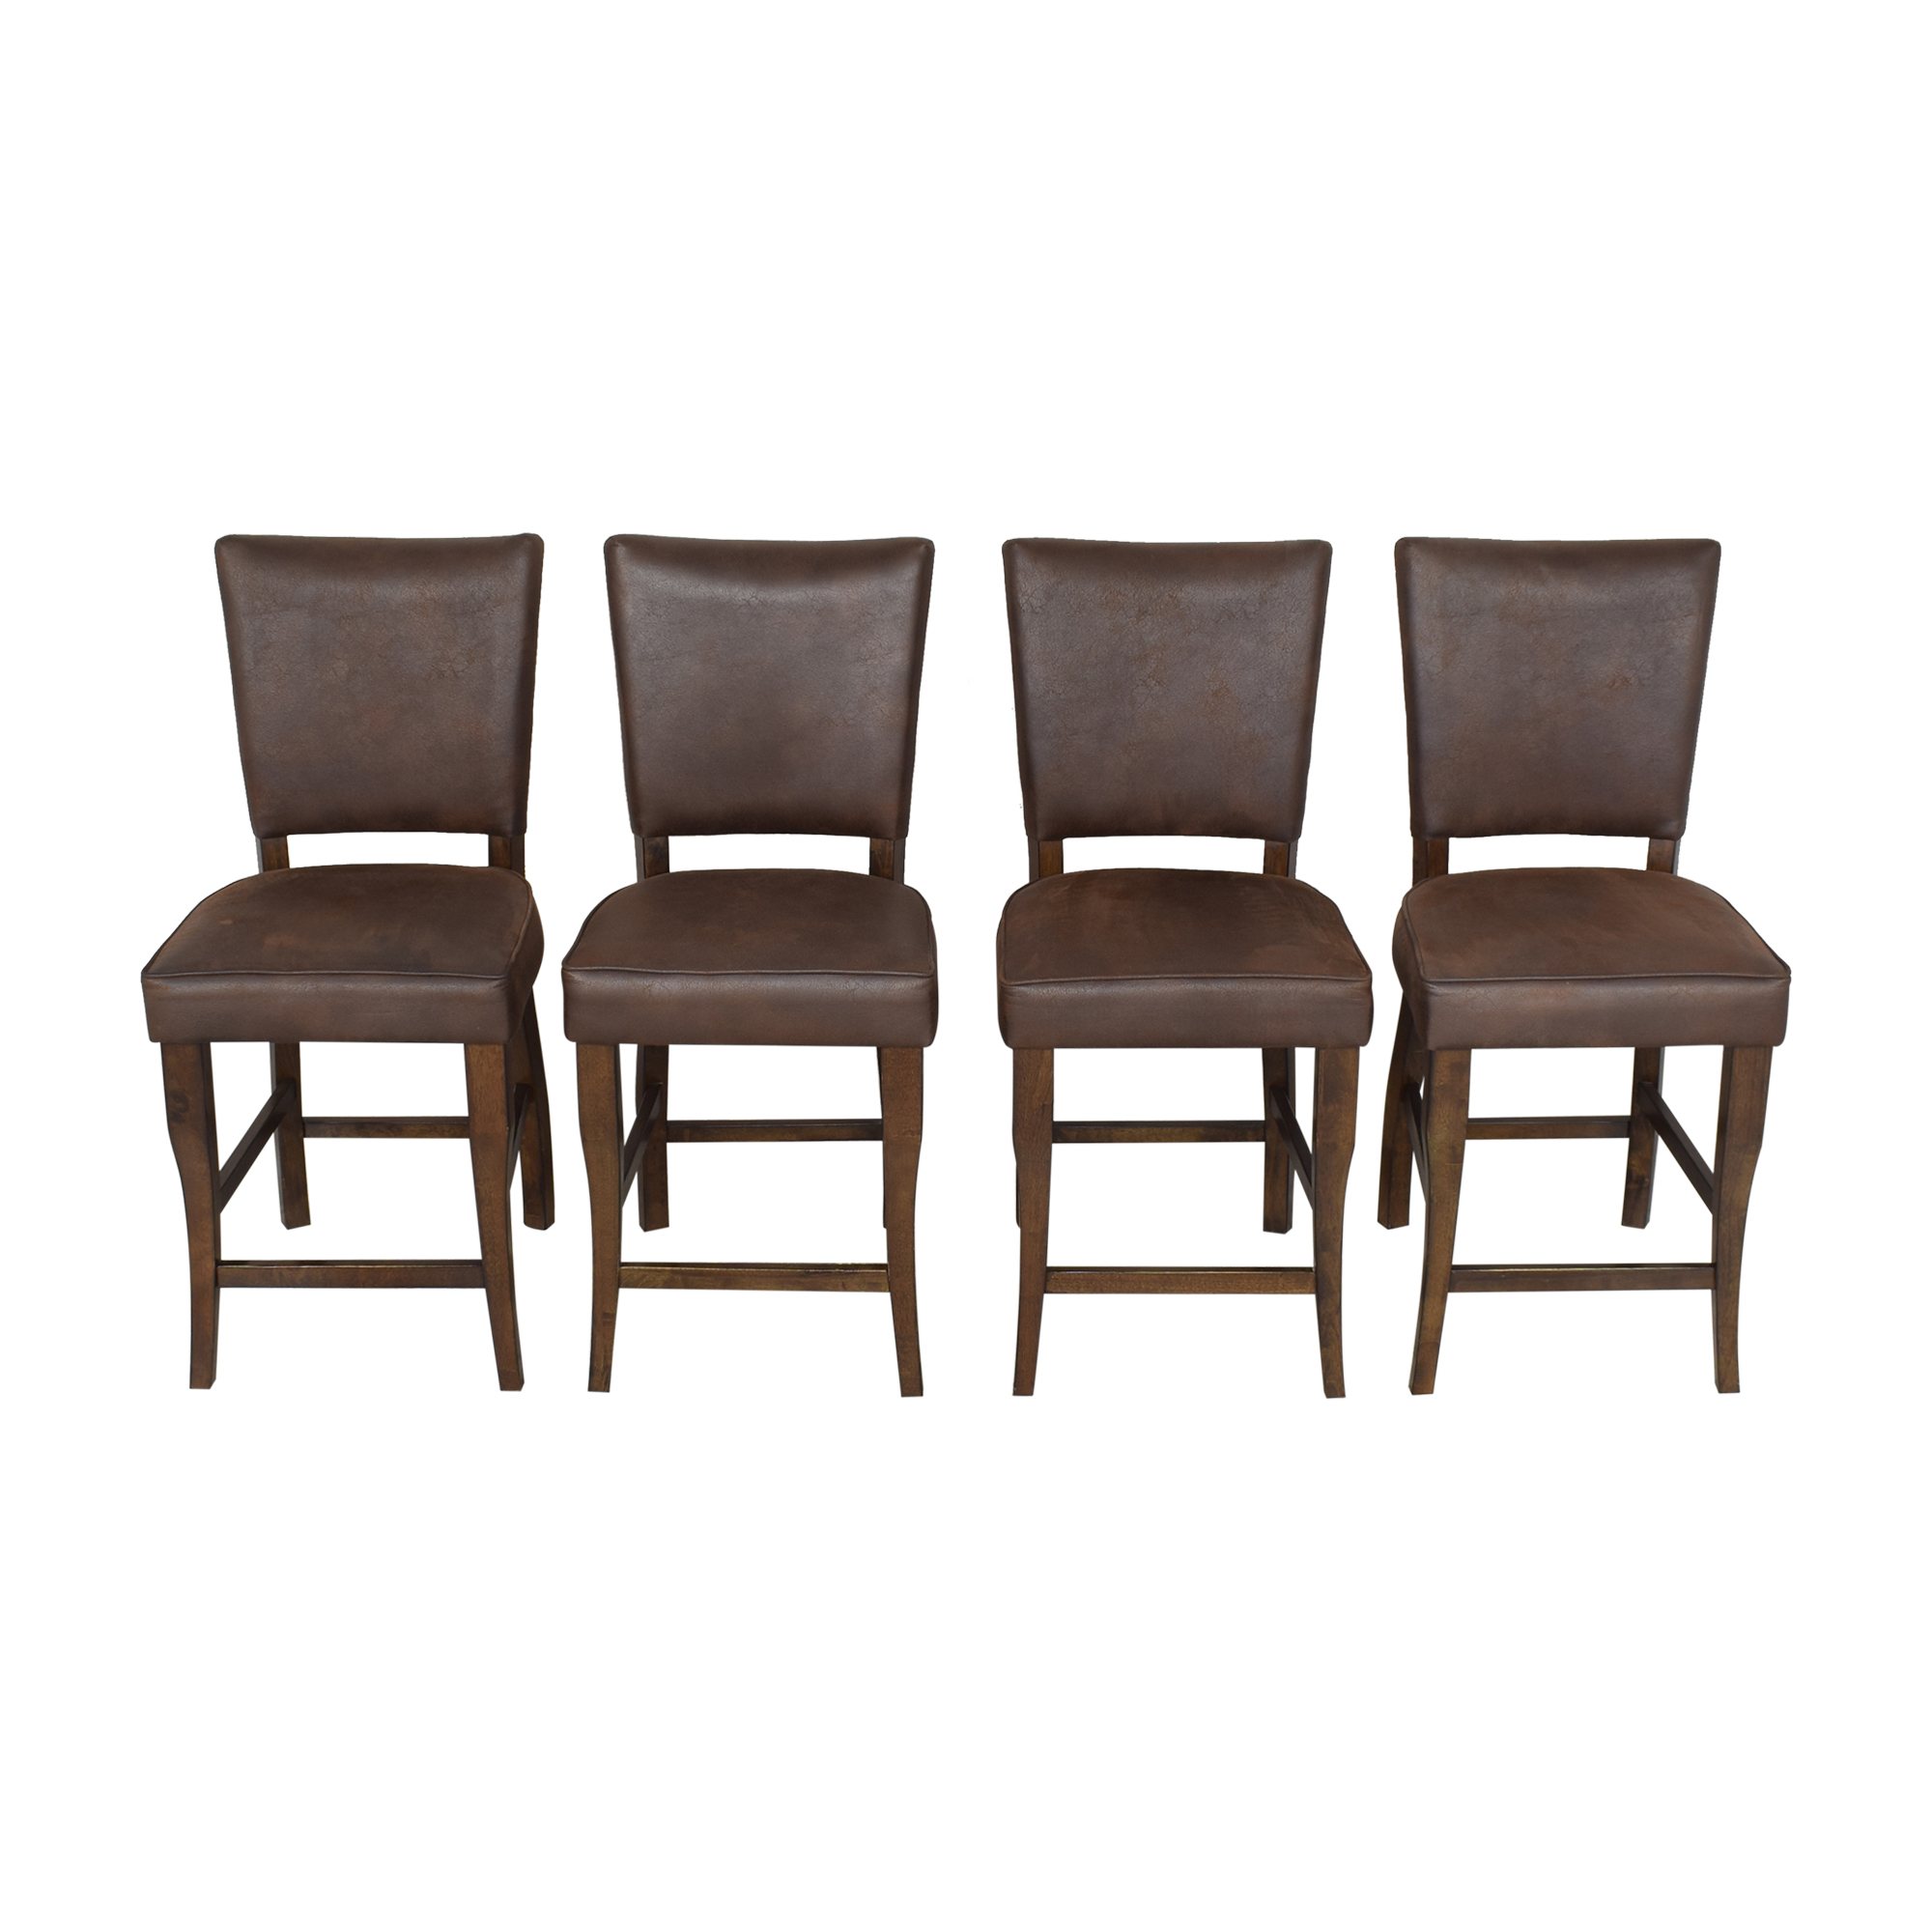 Raymour & Flanigan Raymour & Flanigan Counter Stools second hand